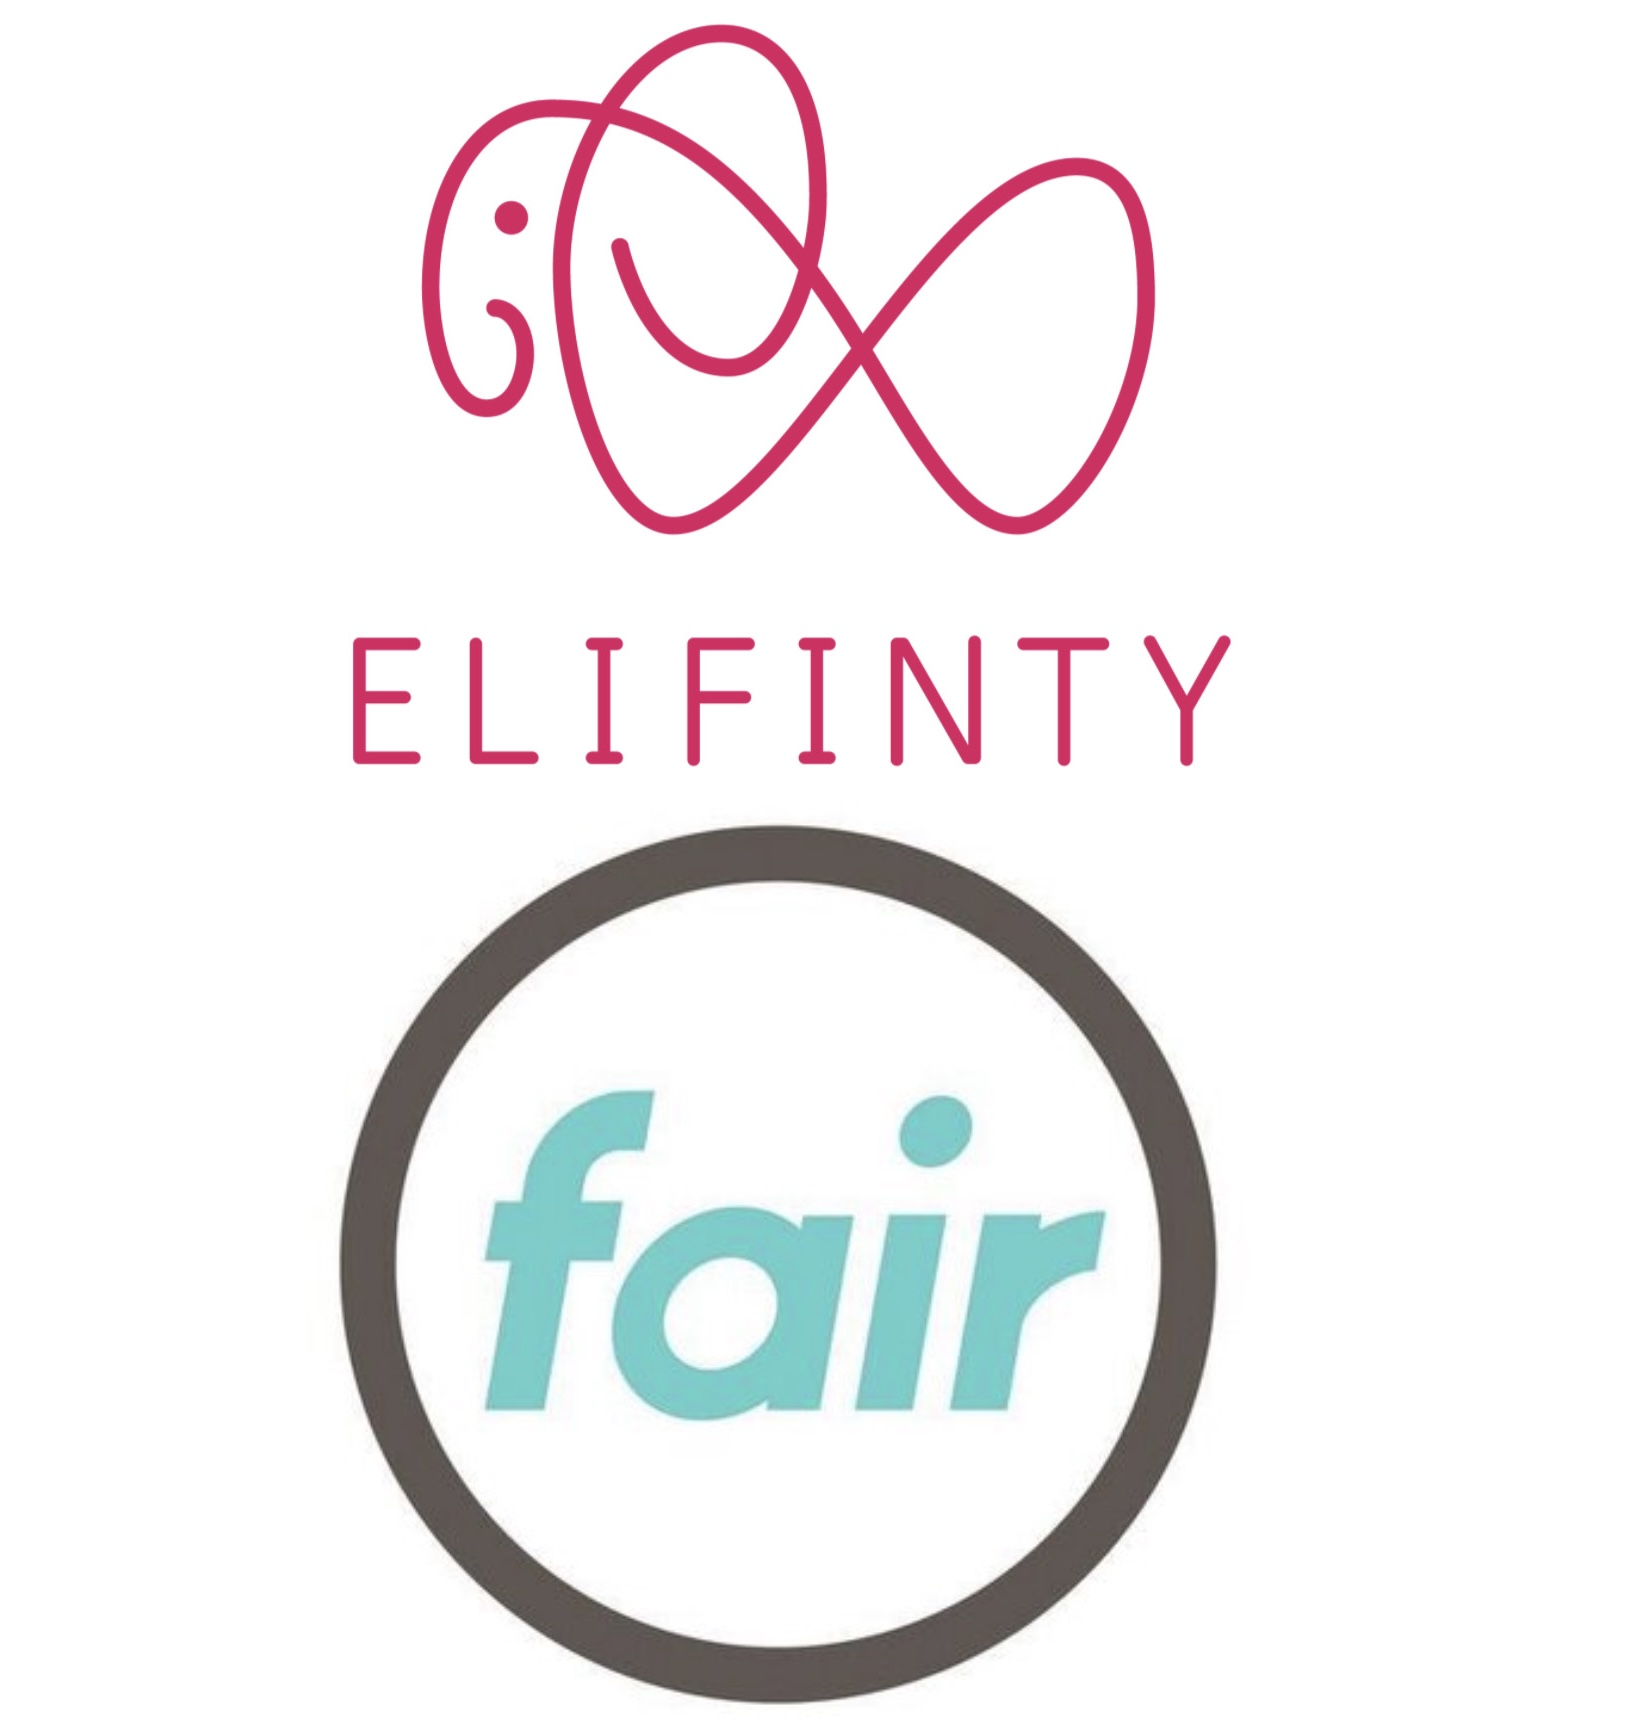 Elifinty & Fair Money Advice Partner to Disrupt Debt Advice Space